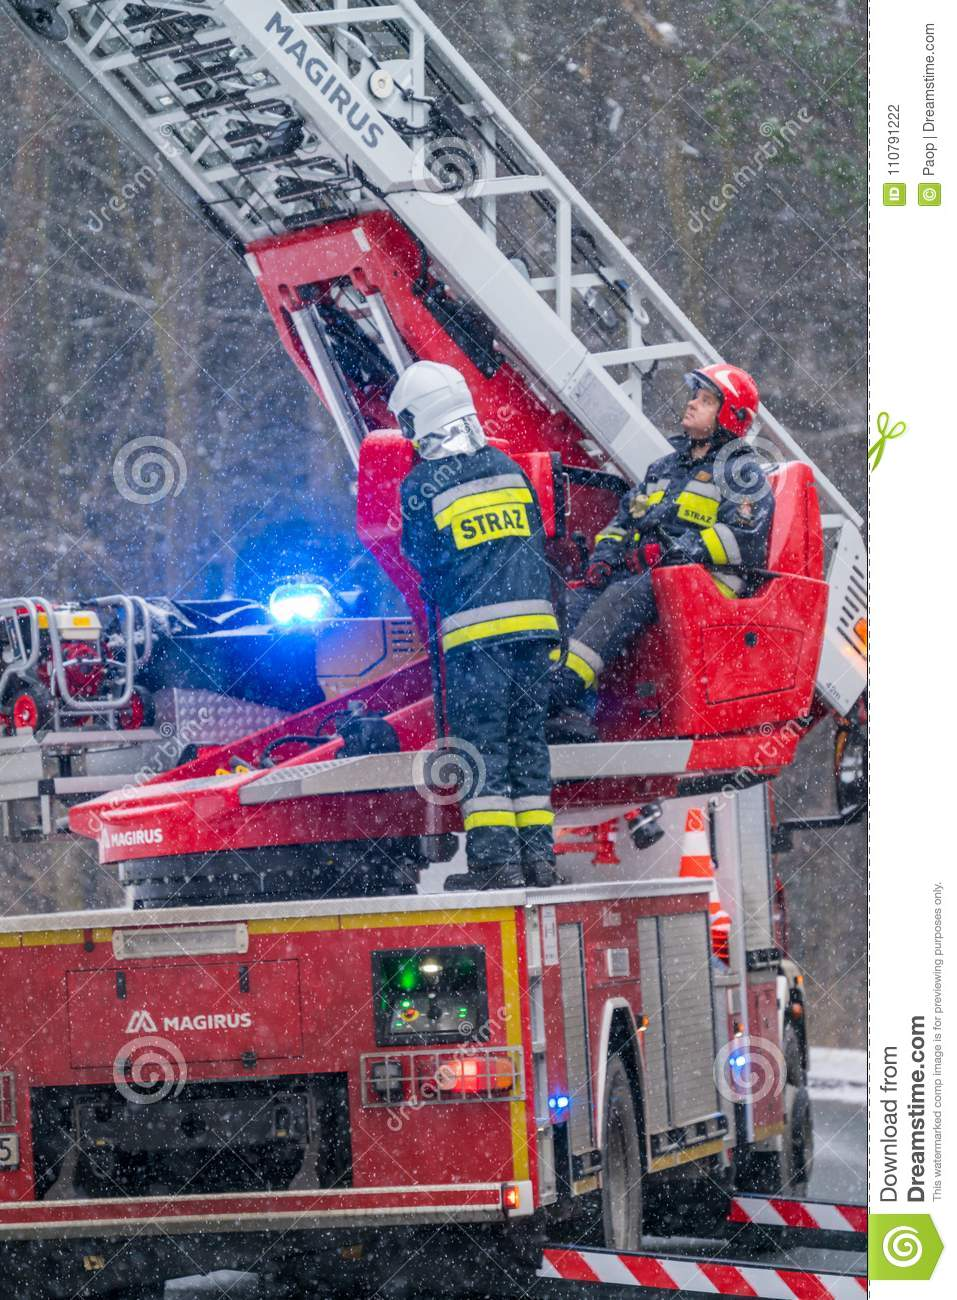 Firefighters cutting branches of a tree